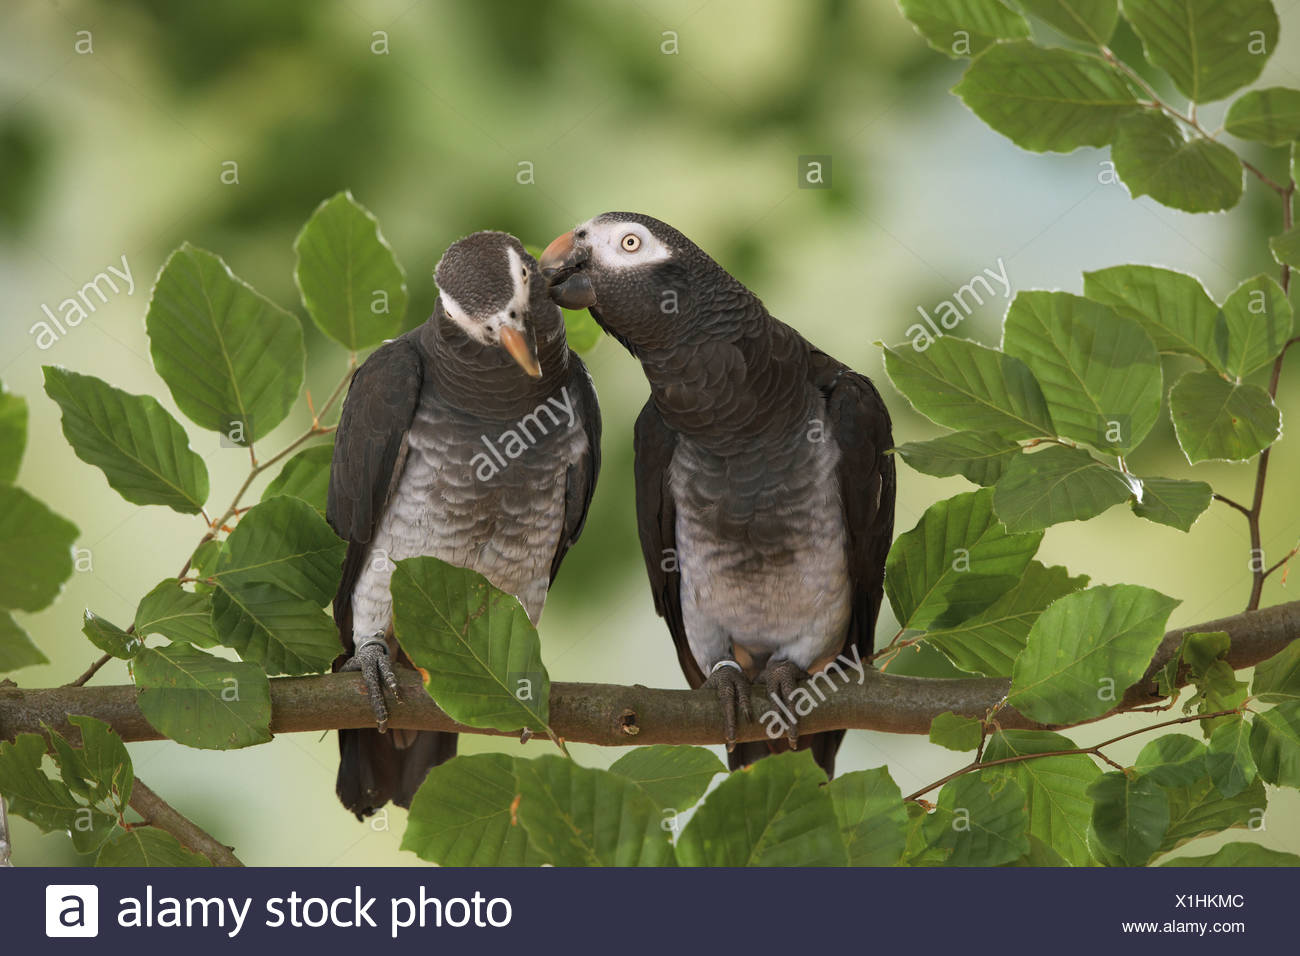 two Timneh African Grey parrots on branch / Psittacus erithacus timneh - Stock Image